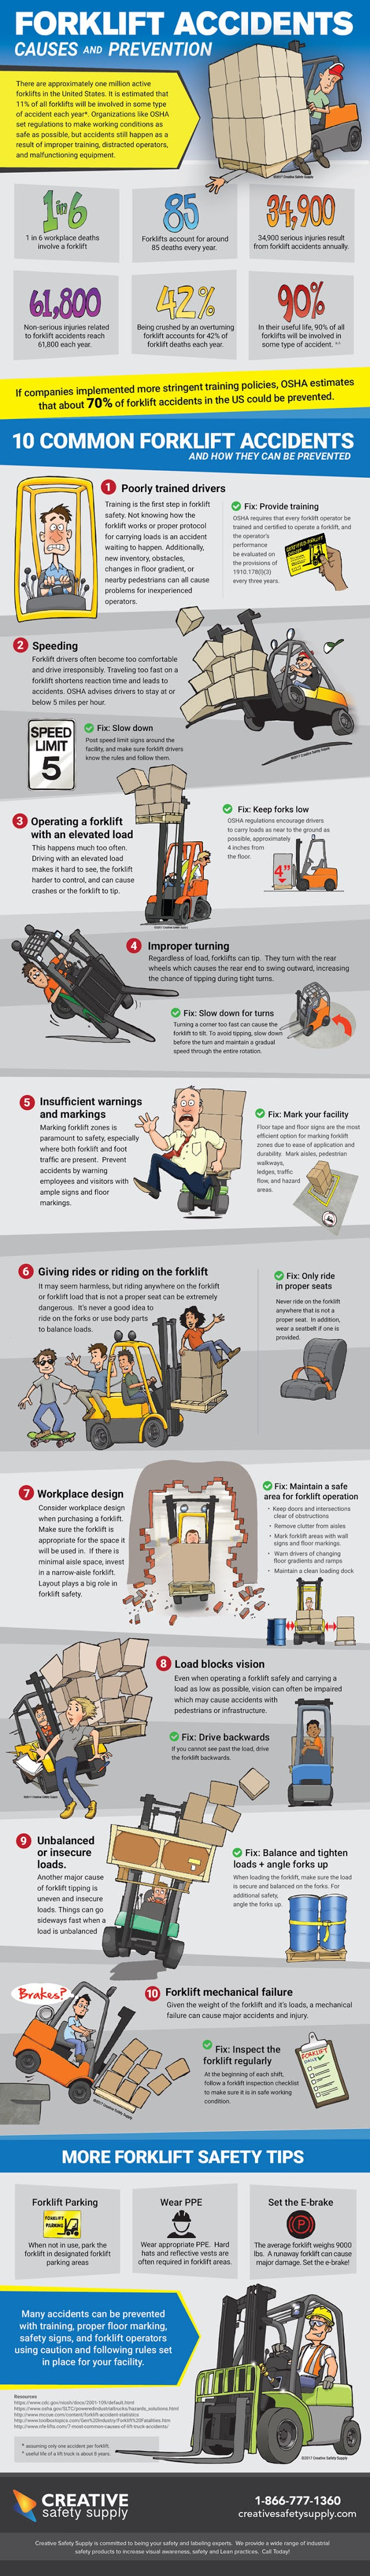 Forklift Accidents: Causes and Prevention #infographic #Forklift Safety #Forklift #infographics #Safety #Floor Marking #OSHA #Workplace Safety